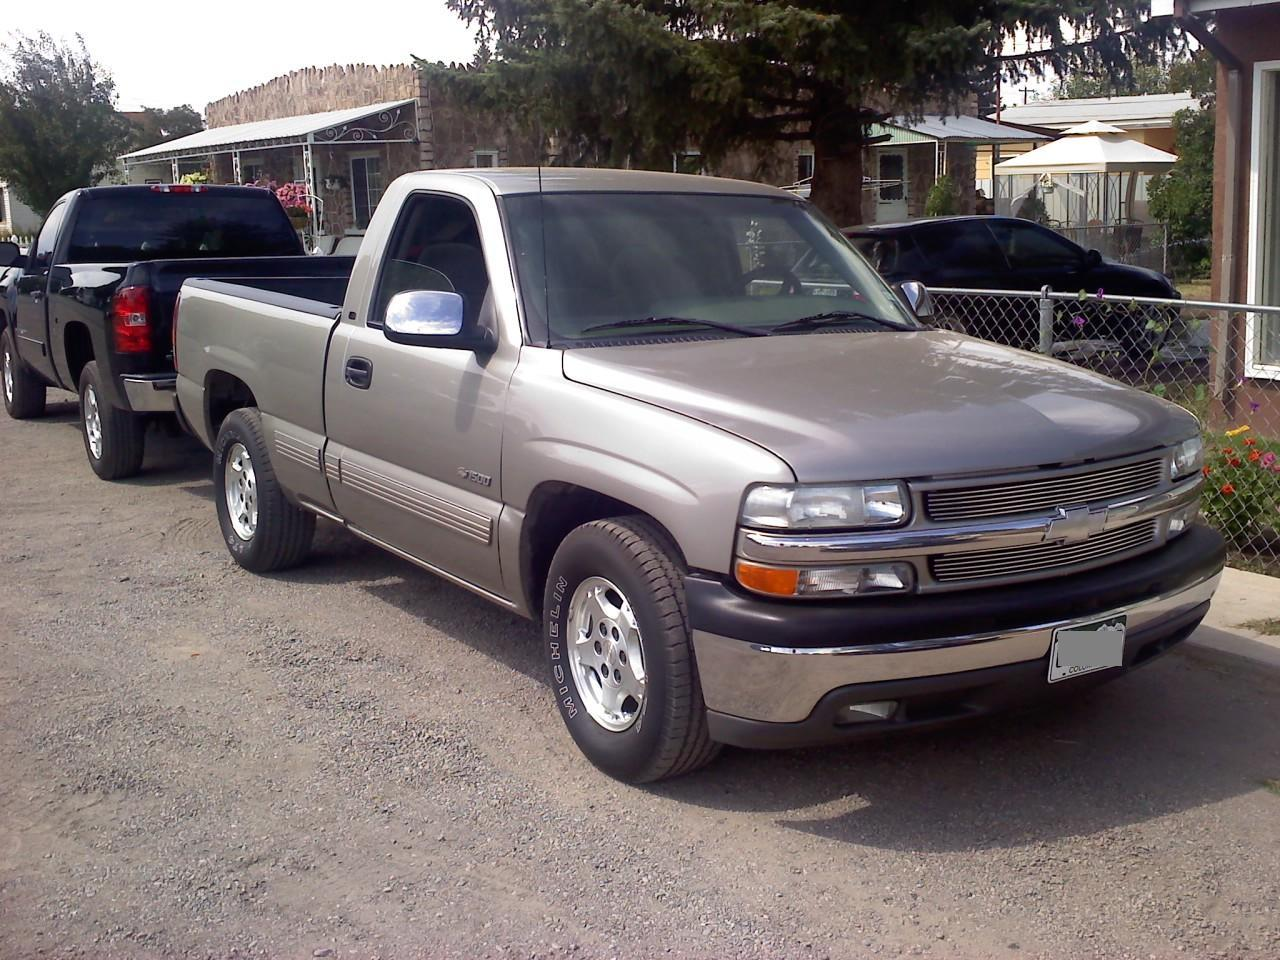 01ssc5 3 2001 chevrolet silverado 1500 regular cab specs photos modification info at cardomain. Black Bedroom Furniture Sets. Home Design Ideas